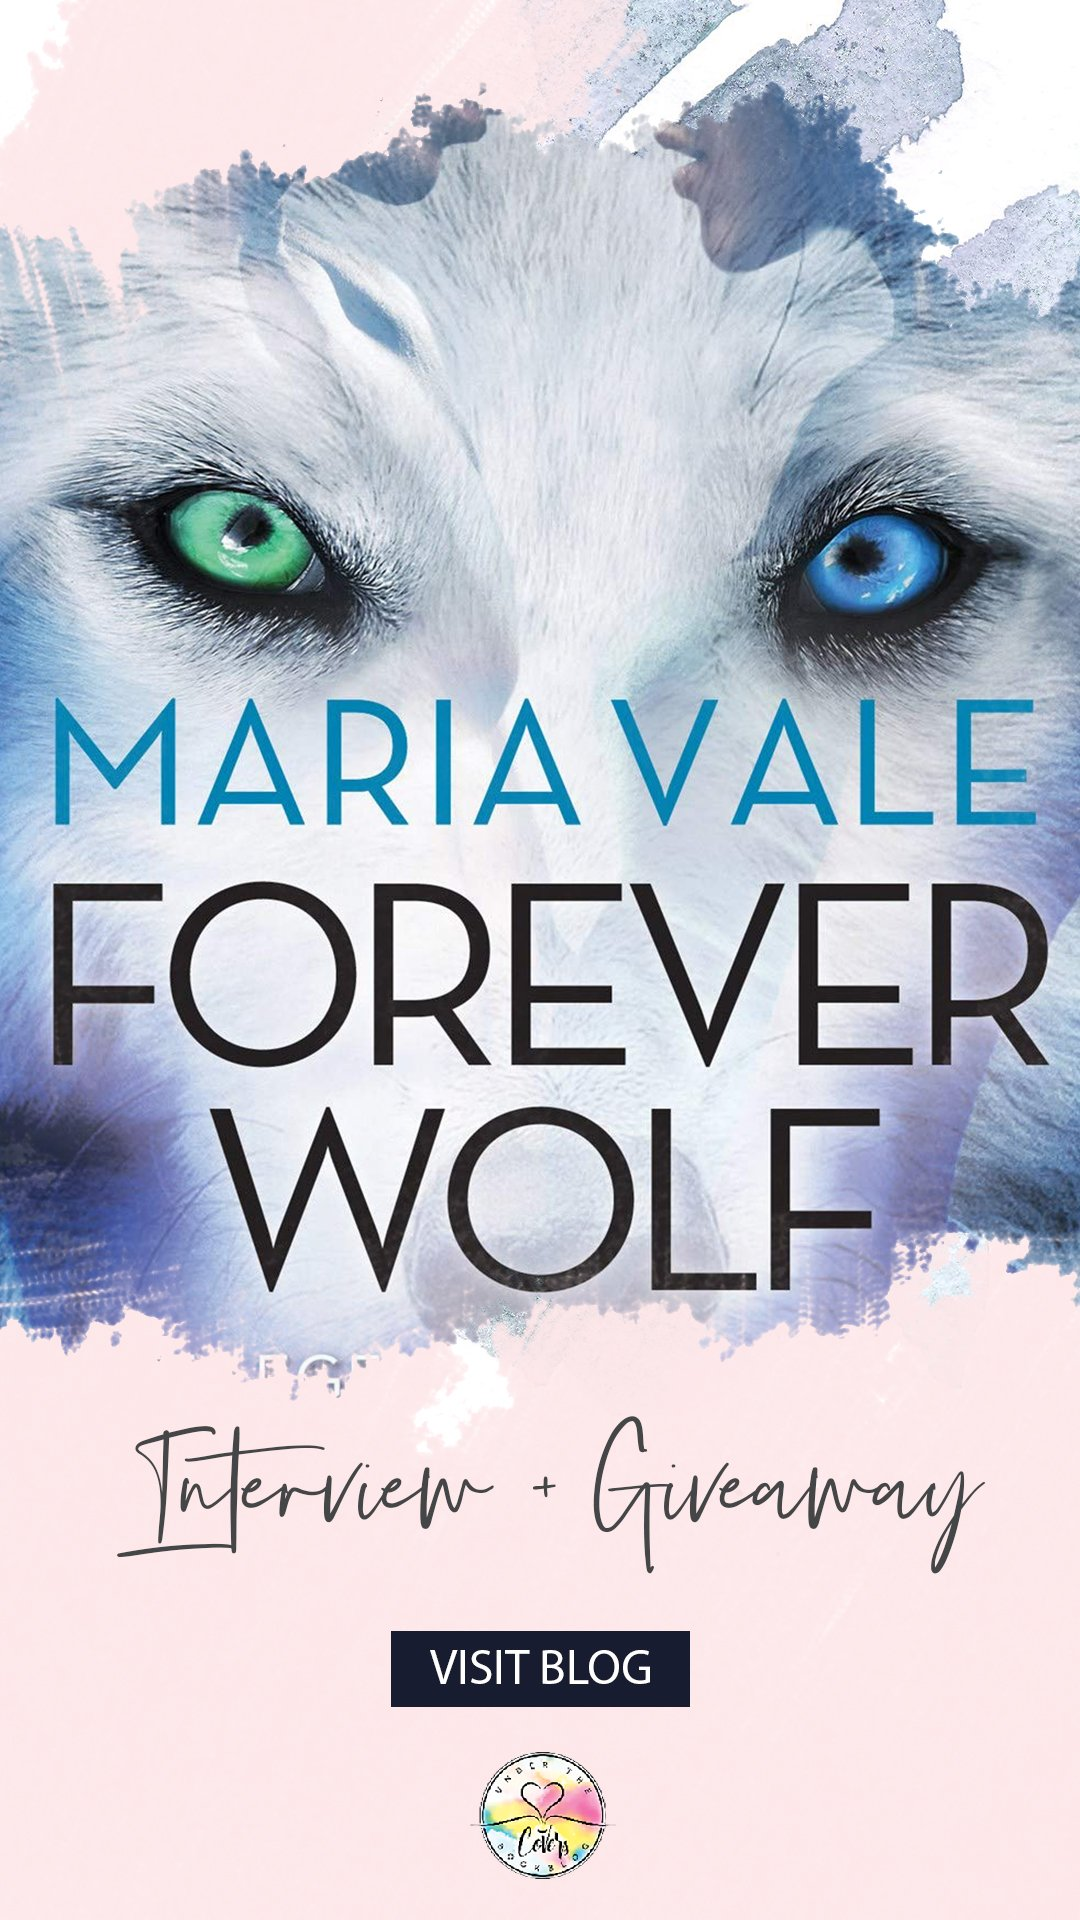 Interview and Giveaway with Maria Vale